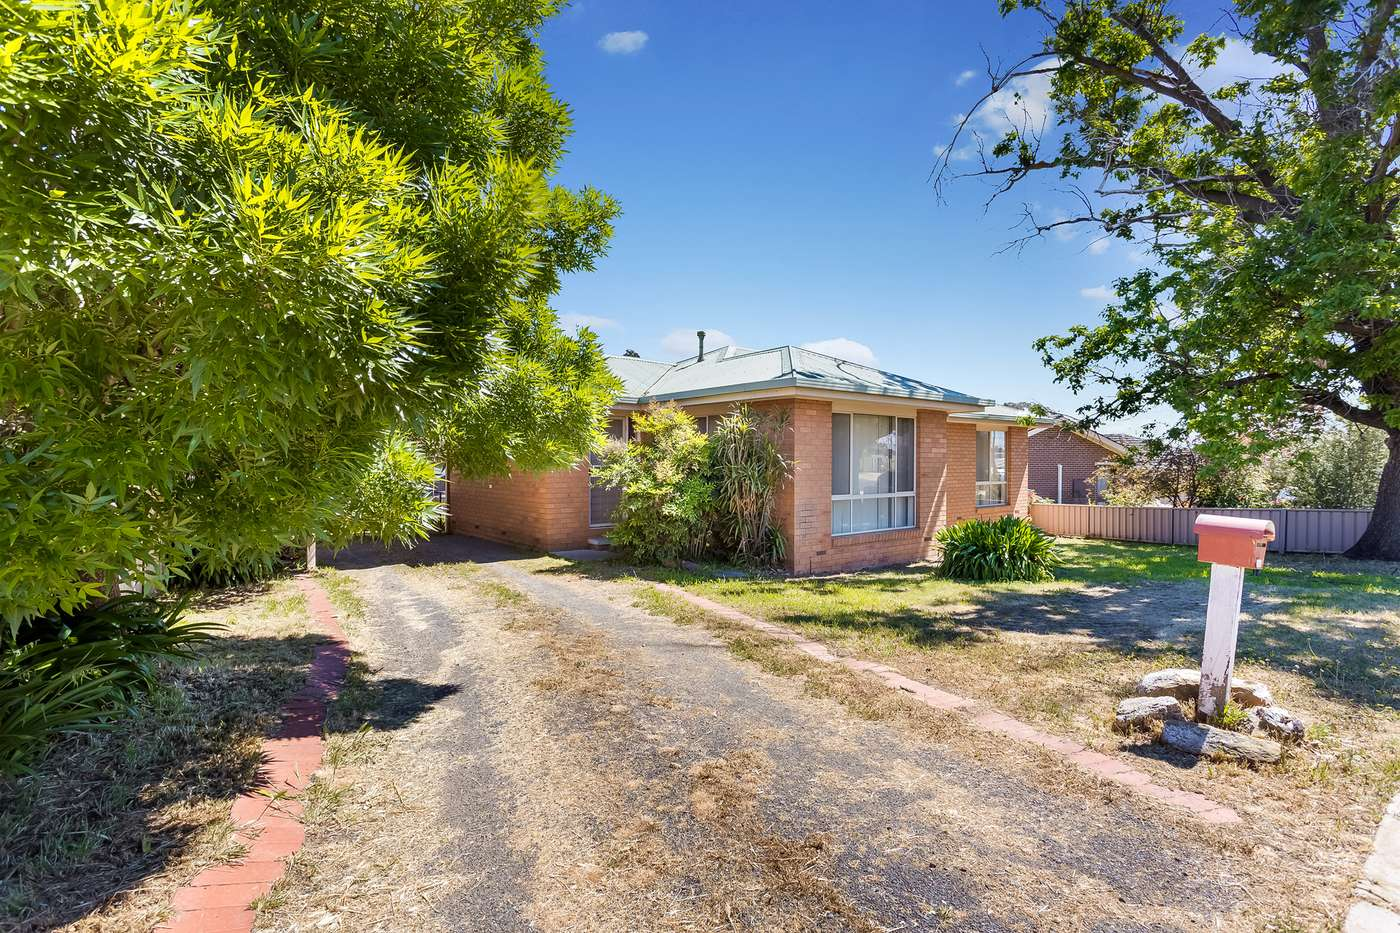 Main view of Homely house listing, 123 Murphy Street, East Bendigo, VIC 3550